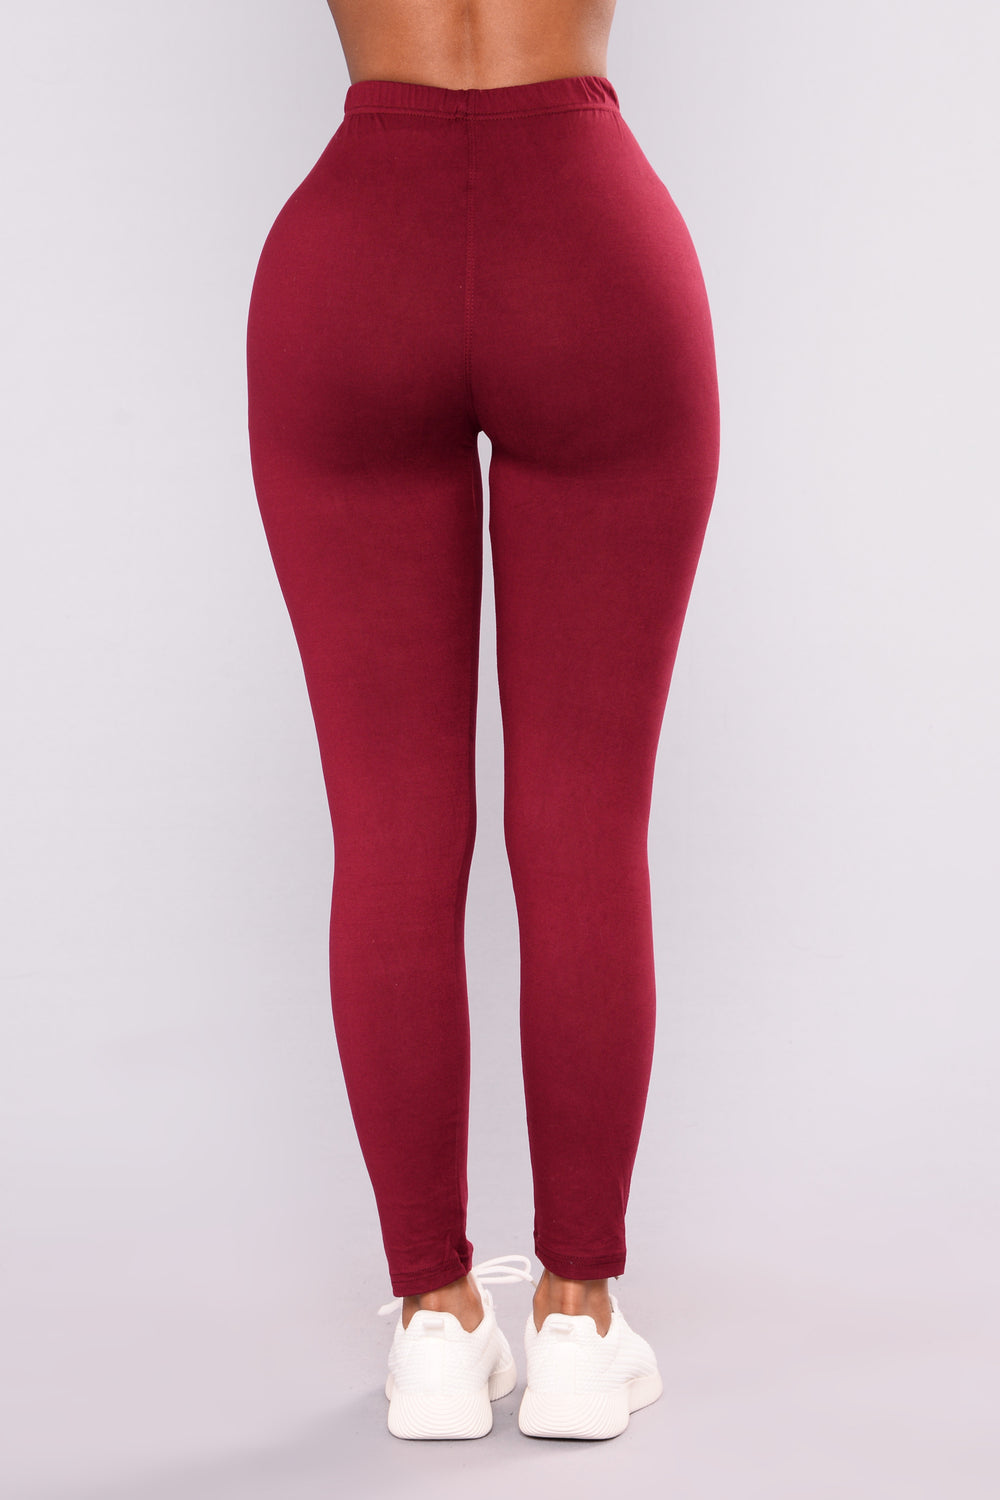 On The Daily Leggings - Burgundy